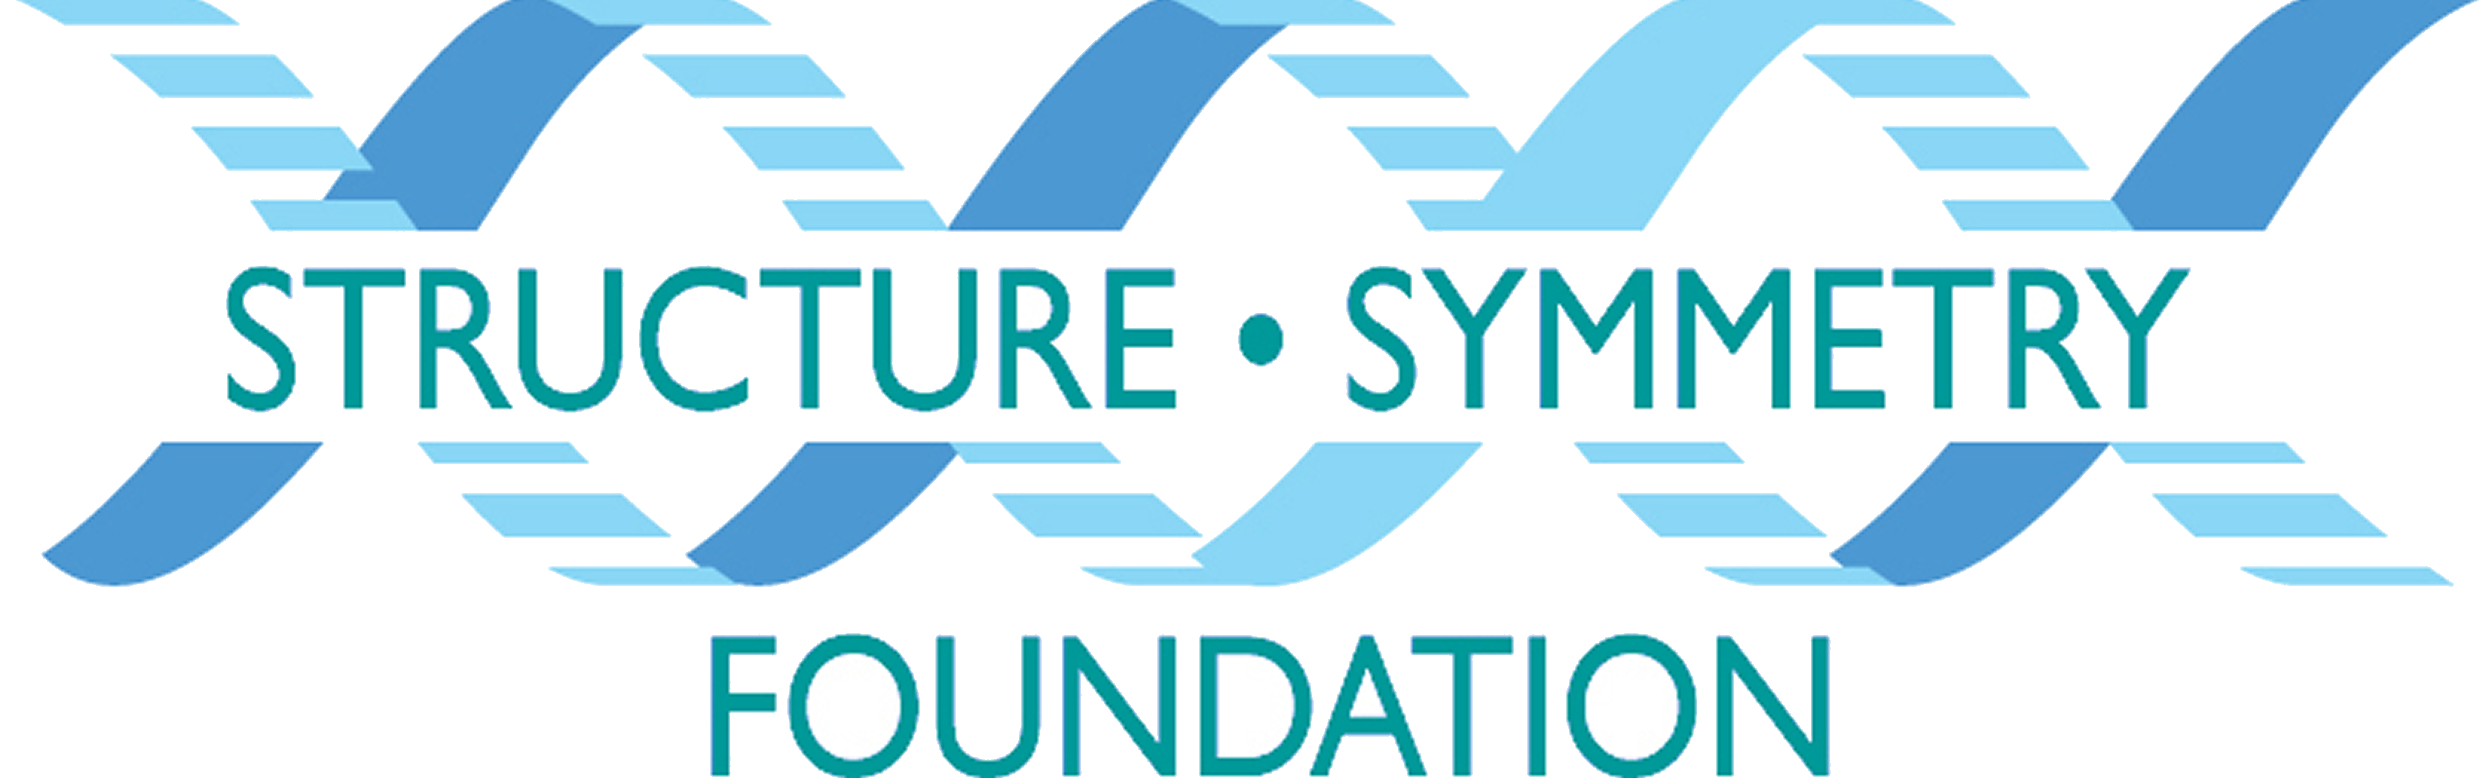 Structure Symmetry Foundation